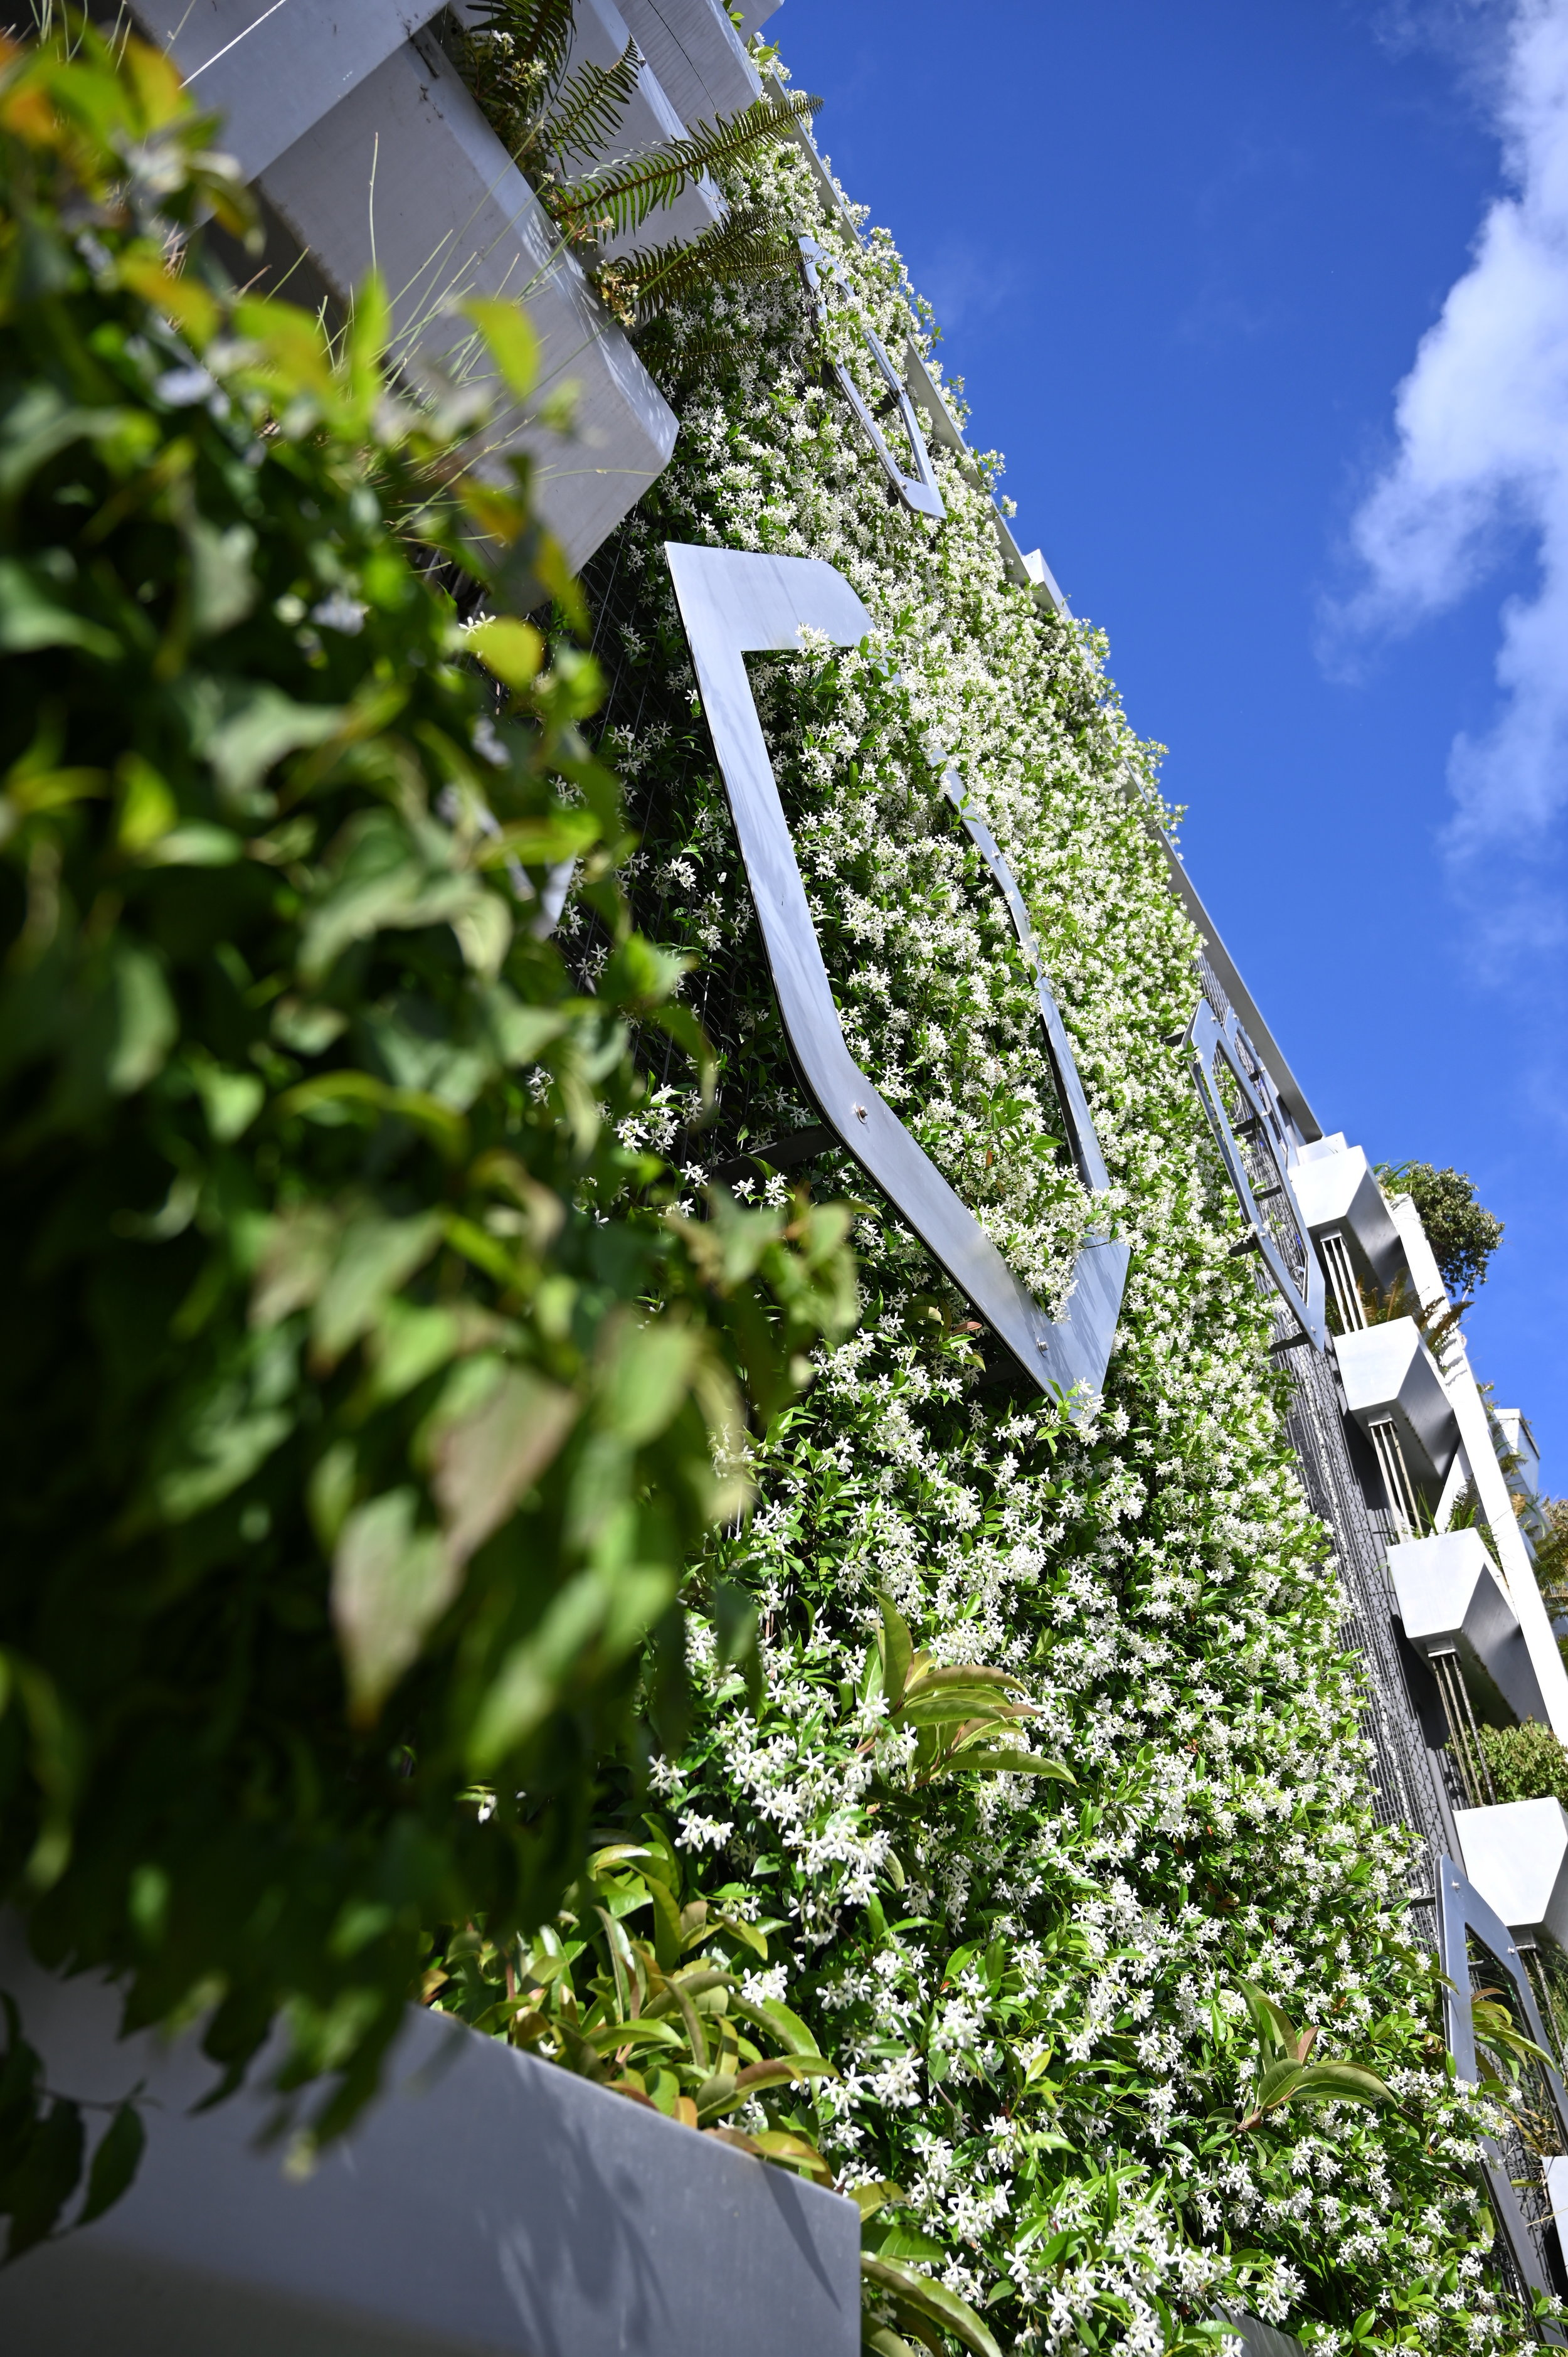 green wall from the ground, clear sky and sun above